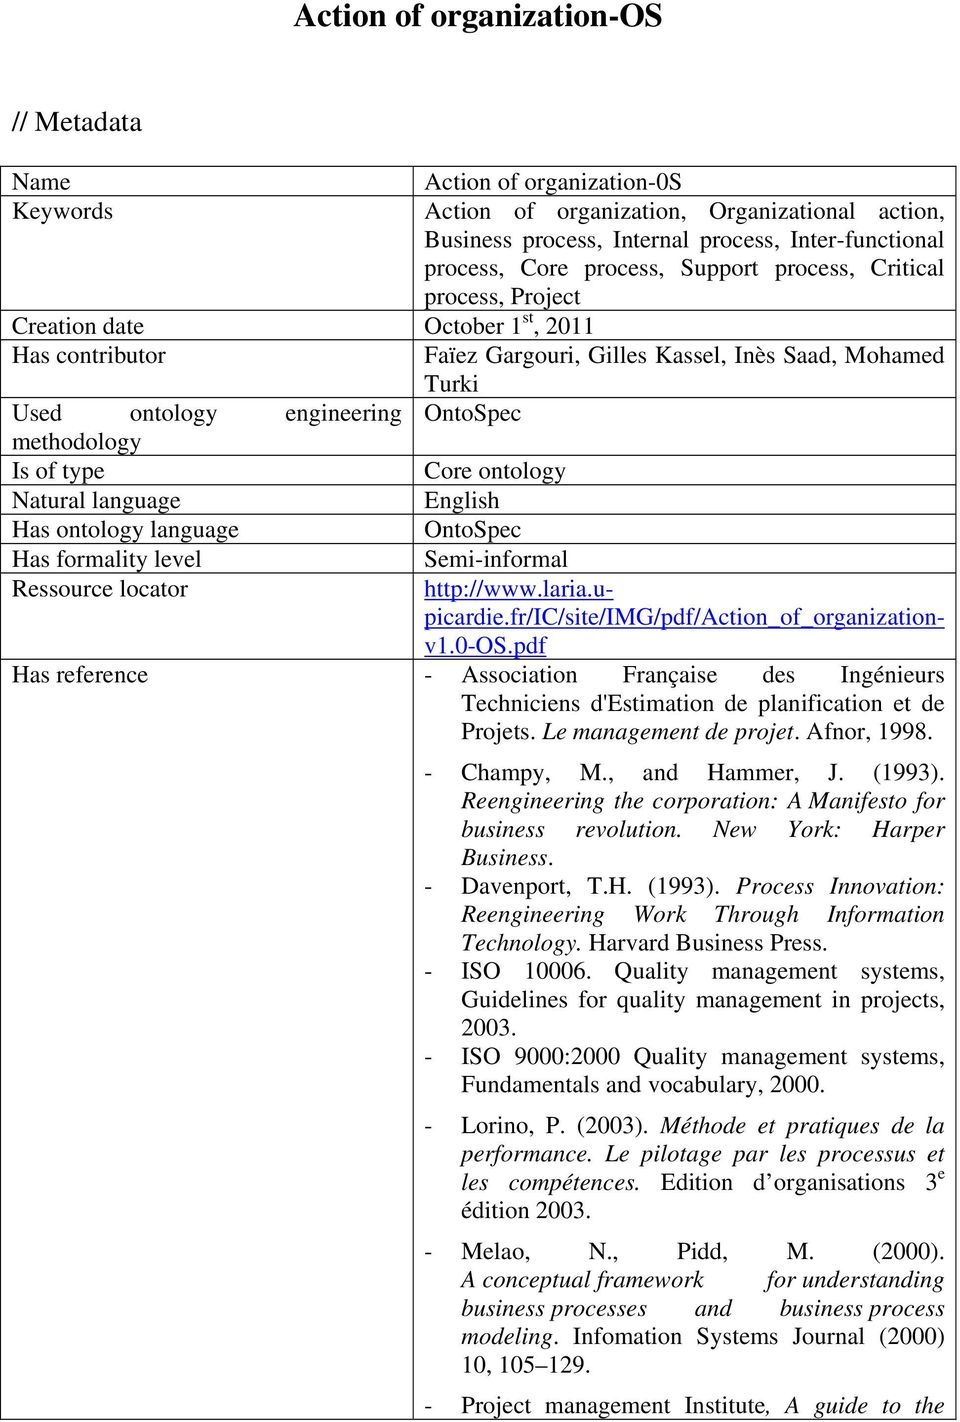 methodology Is of type Core ontology Natural language English Has ontology language OntoSpec Has formality level Semi-informal Ressource locator http://www.laria.upicardie.